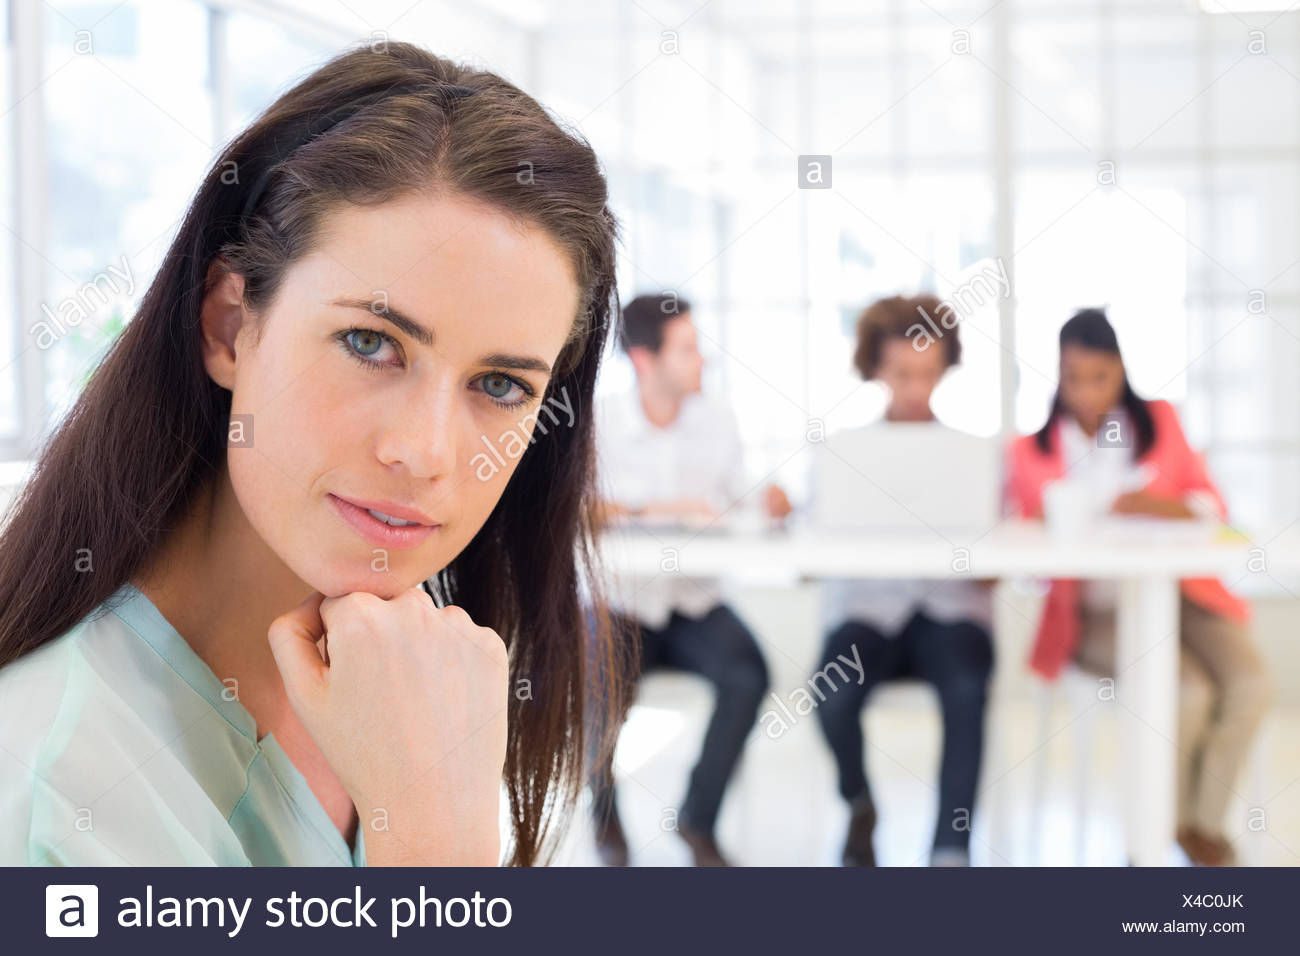 Attractive office worker thinking and looking at camera - Stock Image